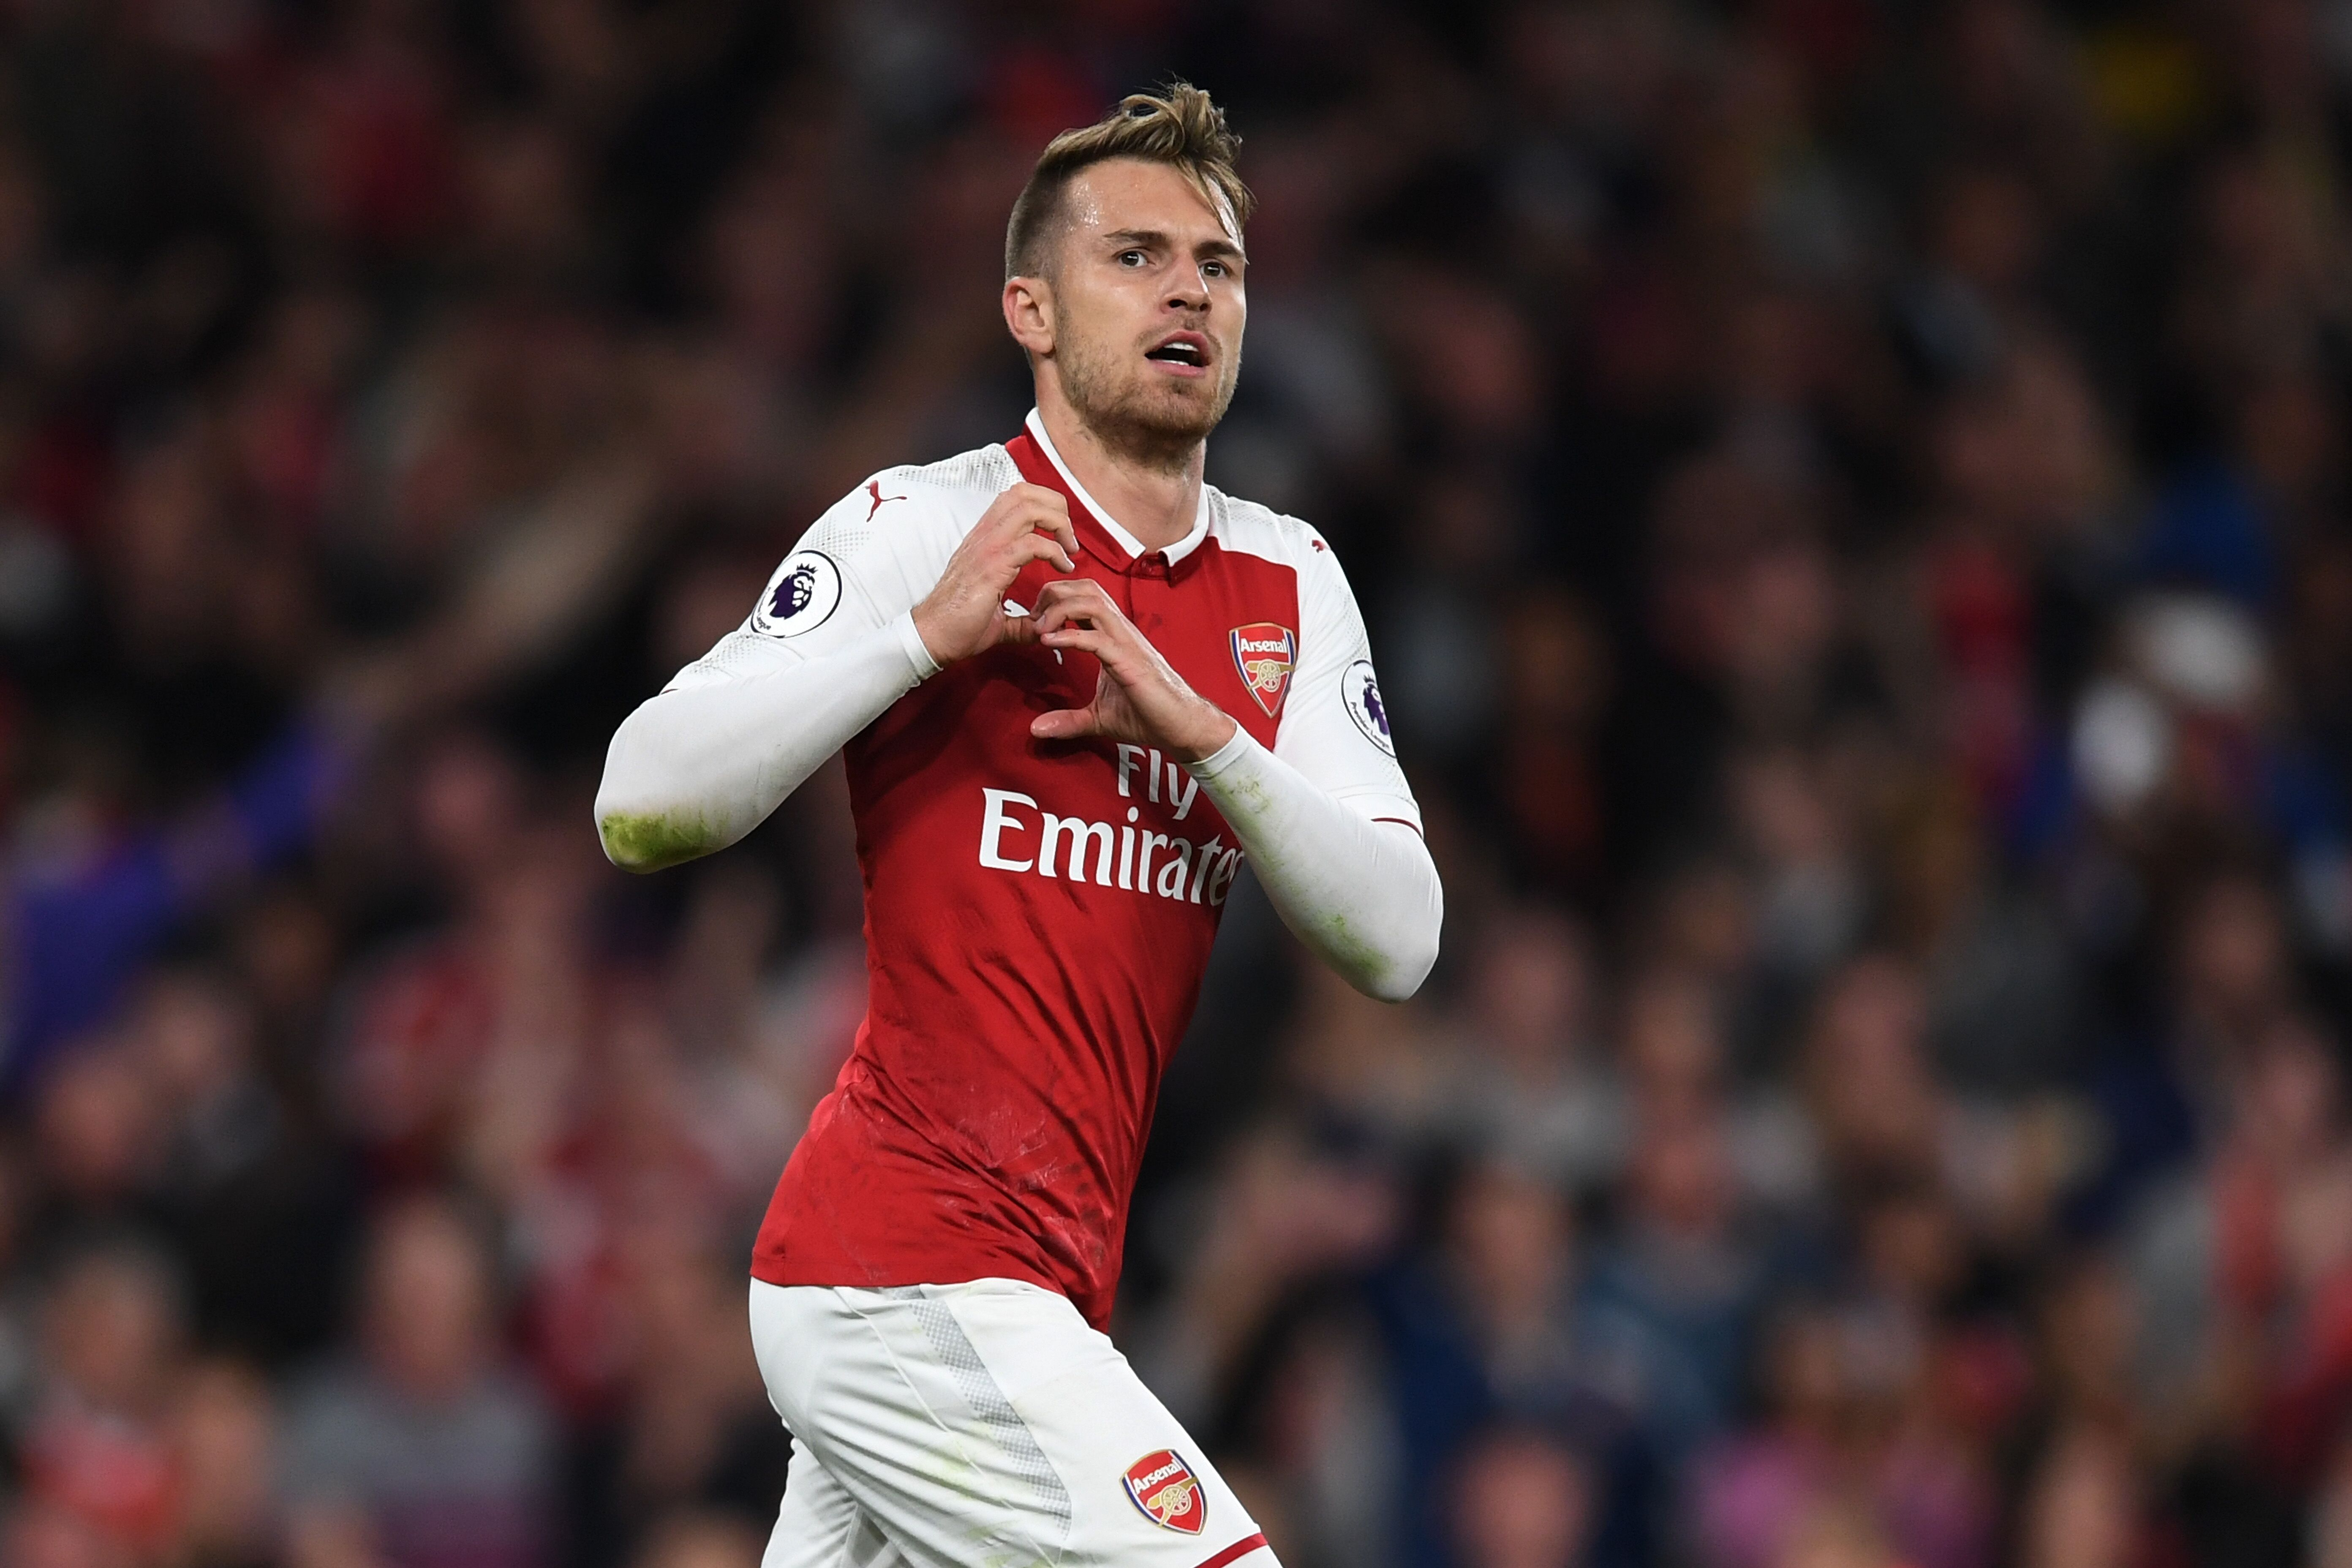 Arsenal Alexis Sanchez Aaron Ramsey like a sibling rivalry